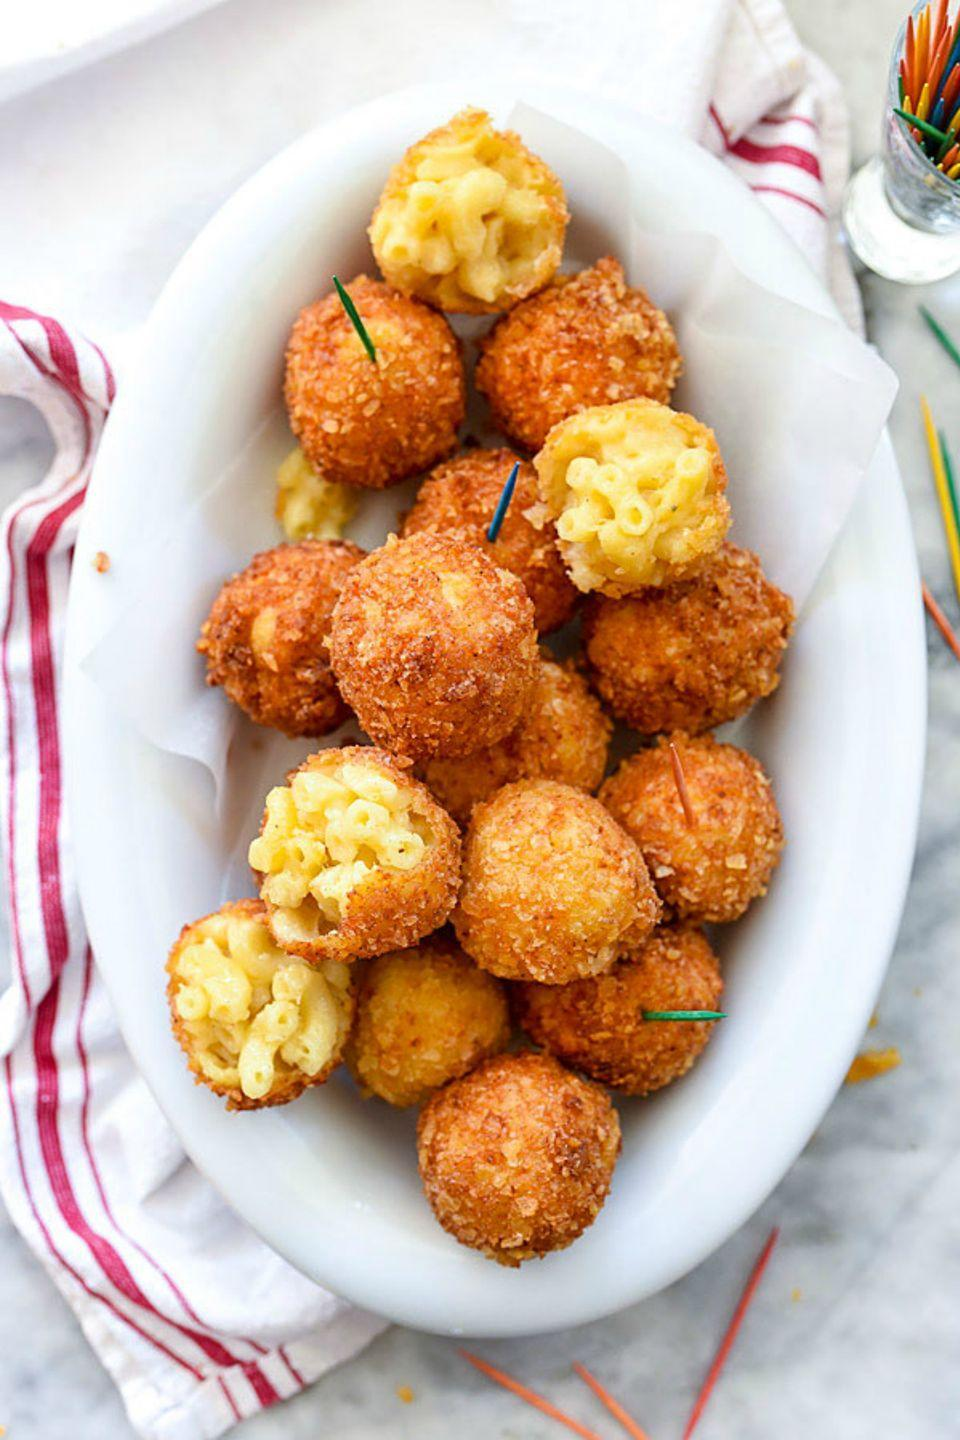 "<p>To make this crowd pleasing treat, coat balls of mac 'n cheese with breadcrumb mix and fry until golden brown. </p><p><strong>Get the recipe at <a href=""http://www.foodiecrush.com/mac-and-cheese-balls-recipe/#"" rel=""nofollow noopener"" target=""_blank"" data-ylk=""slk:Foodie Crush"" class=""link rapid-noclick-resp"">Foodie Crush</a>. </strong></p>"